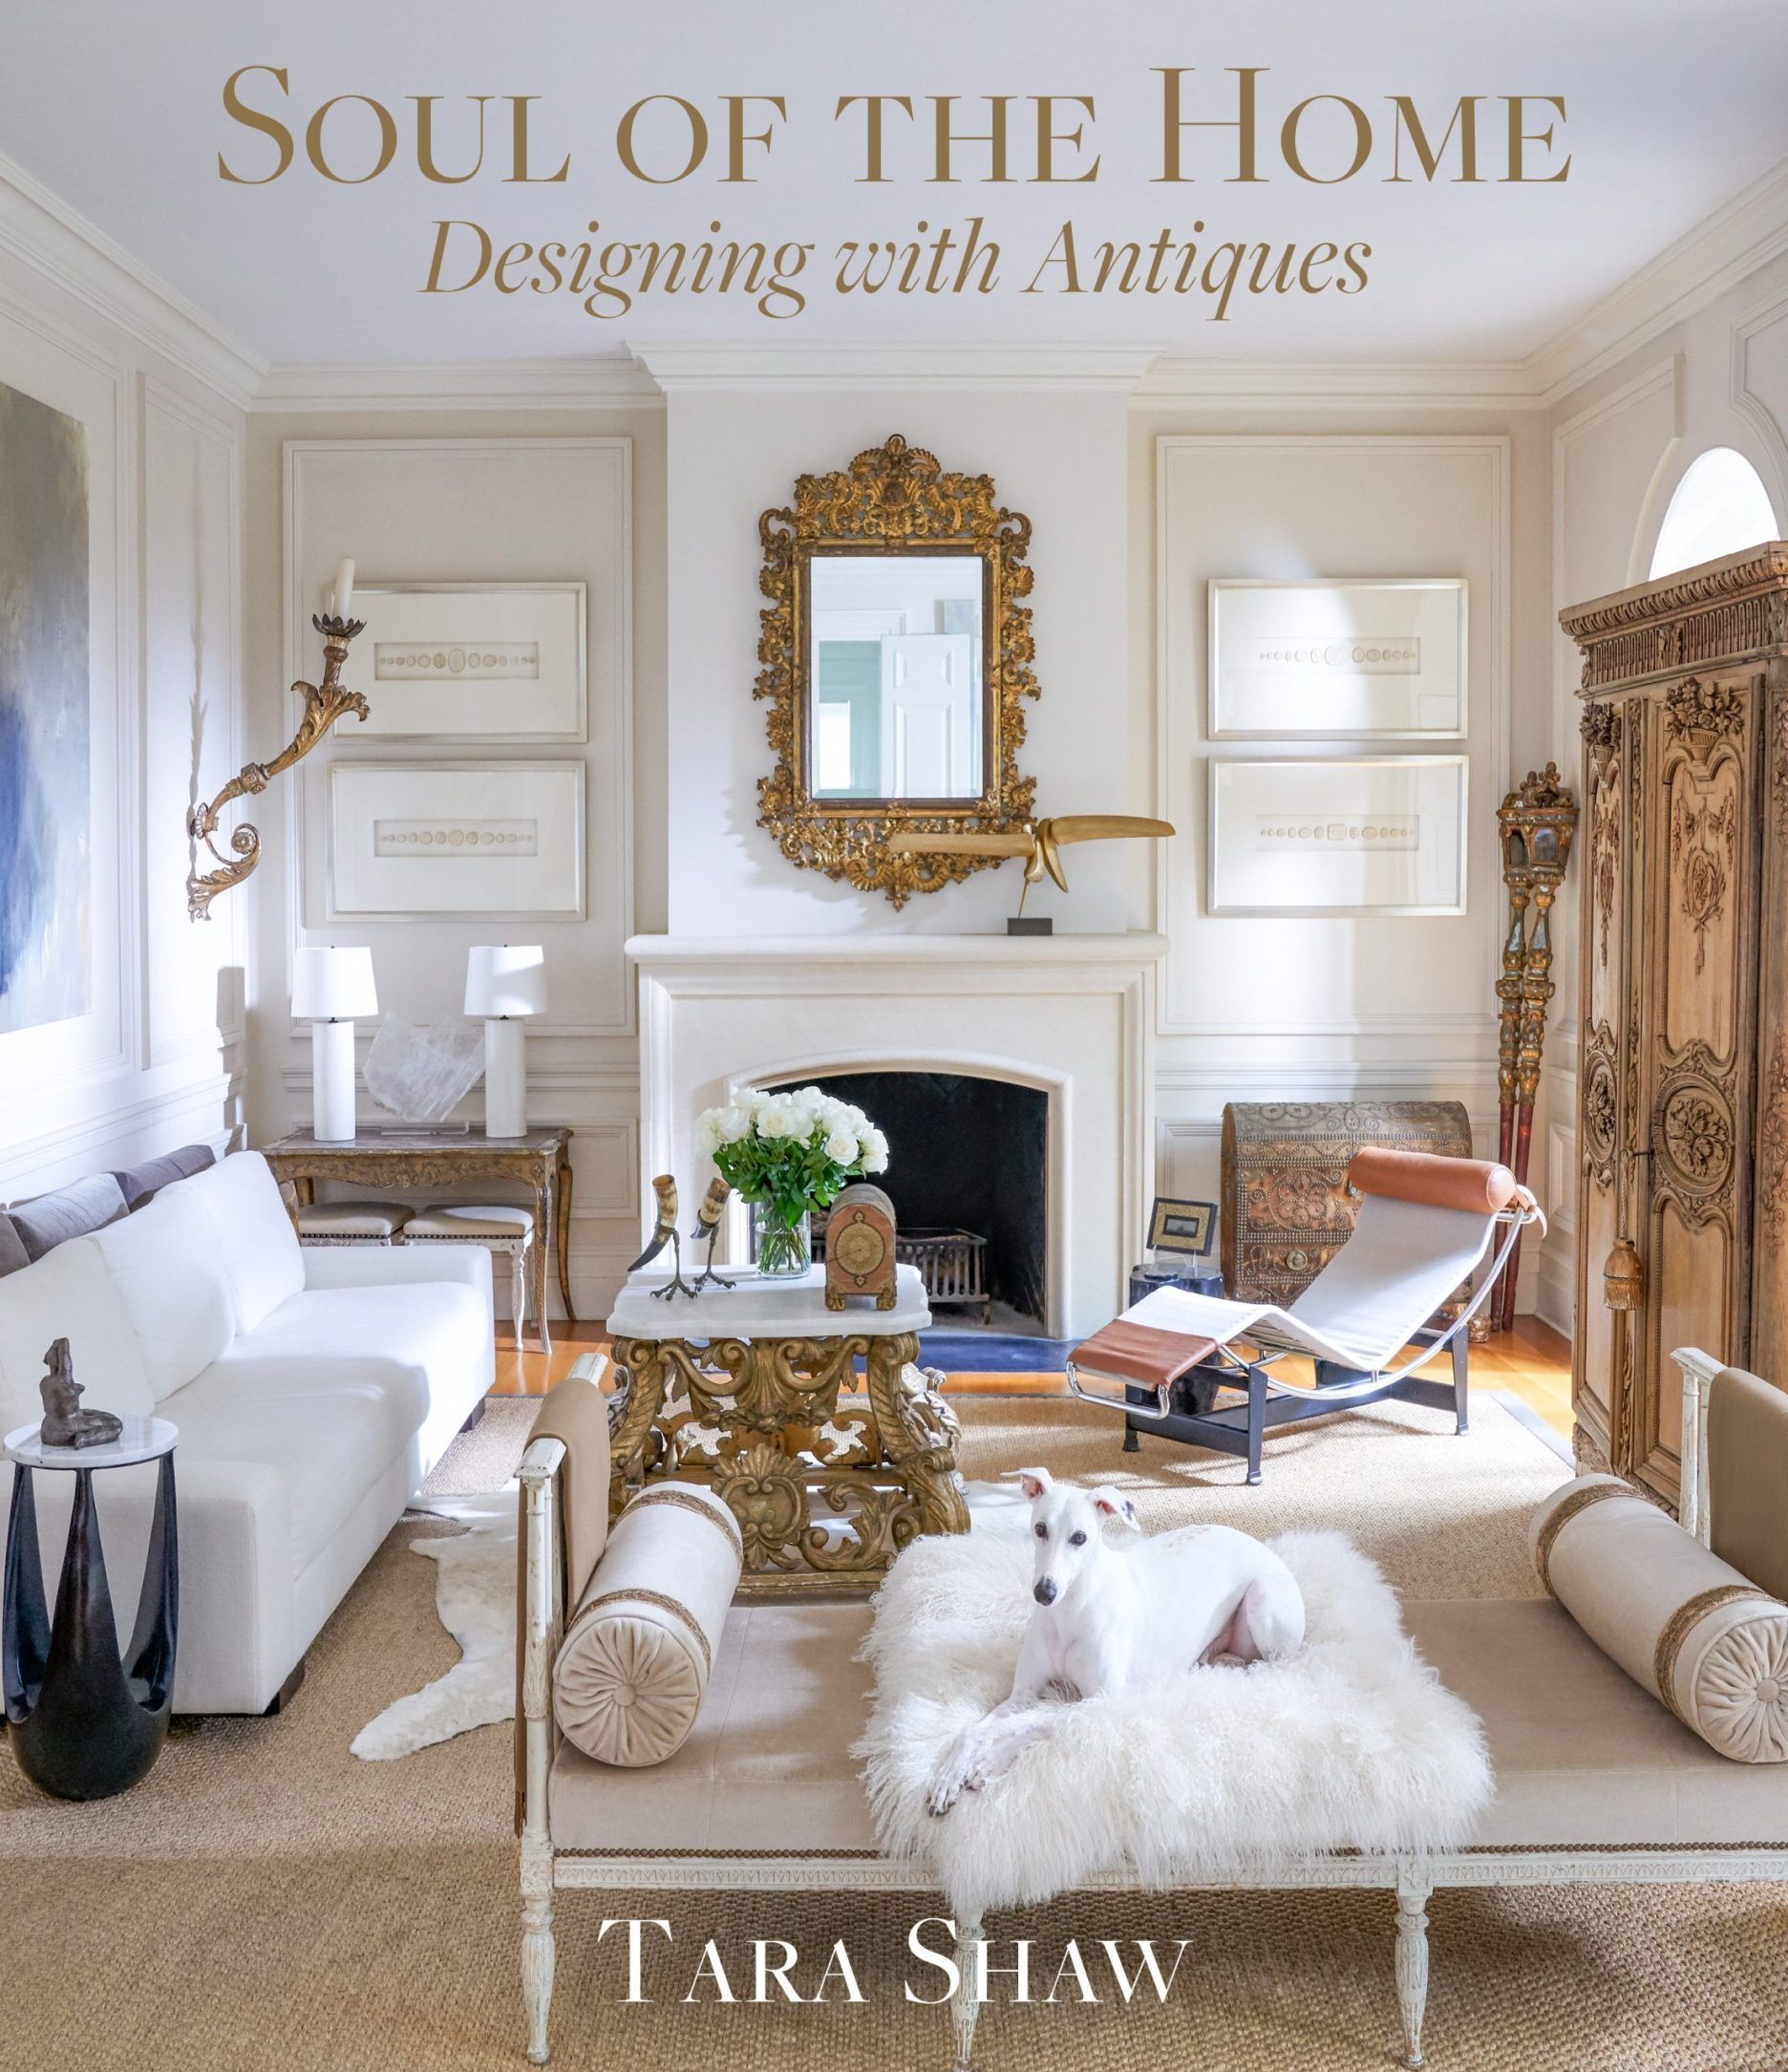 Antique Furniture Tara Shaw Soul Of The Home Book Giveaway In